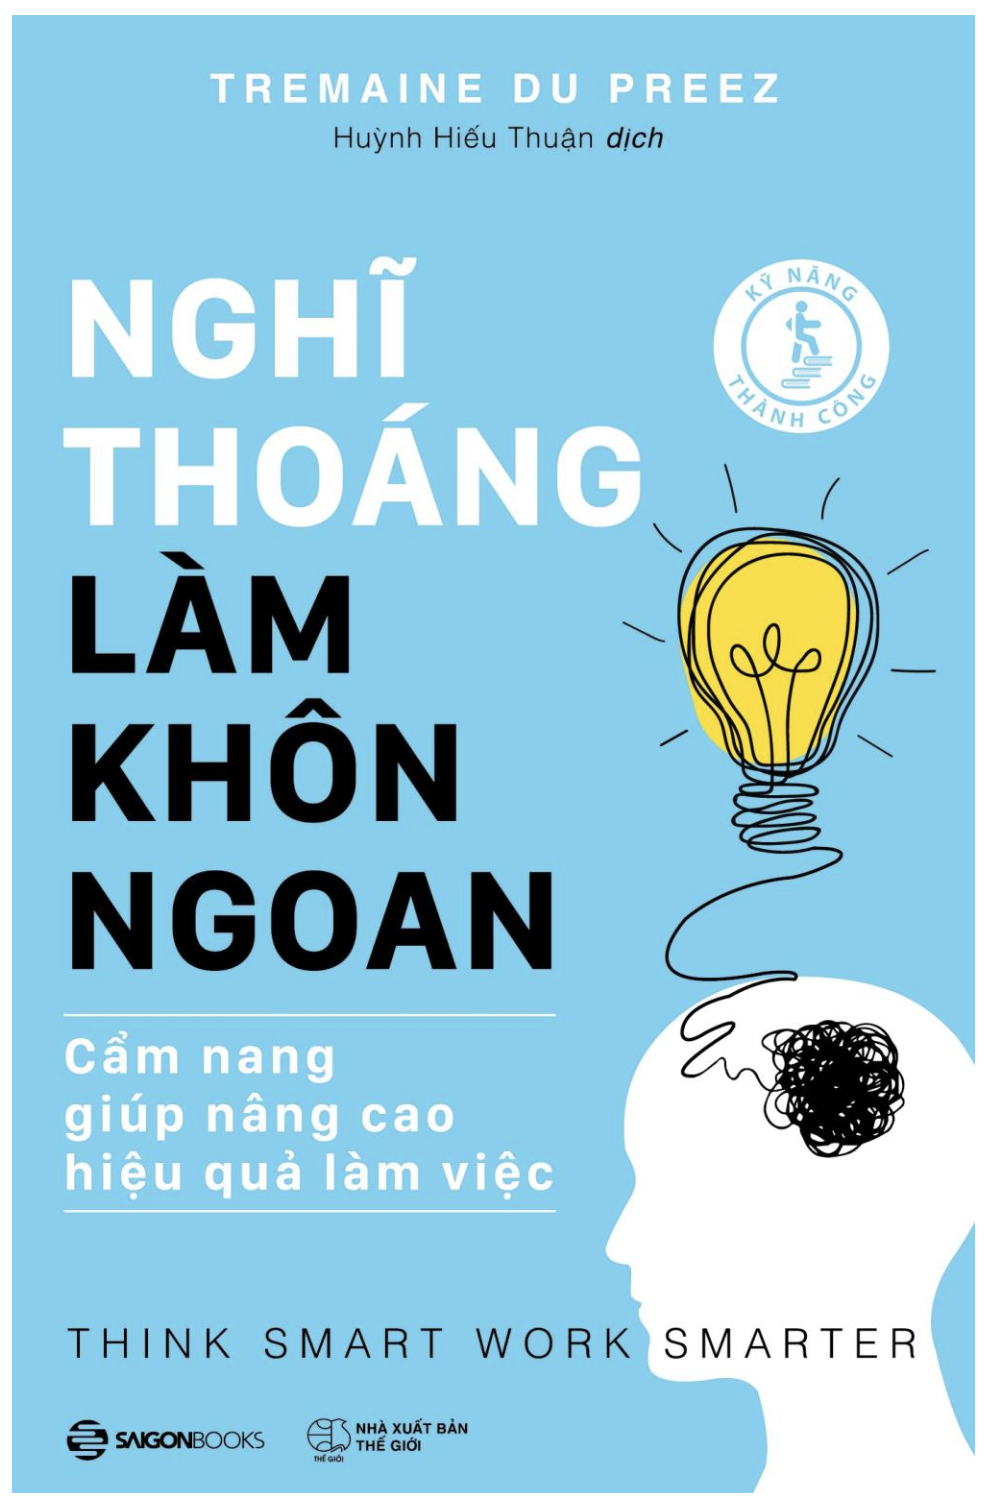 Think Smart, Work Smarter. Vietnamese edition, 2018